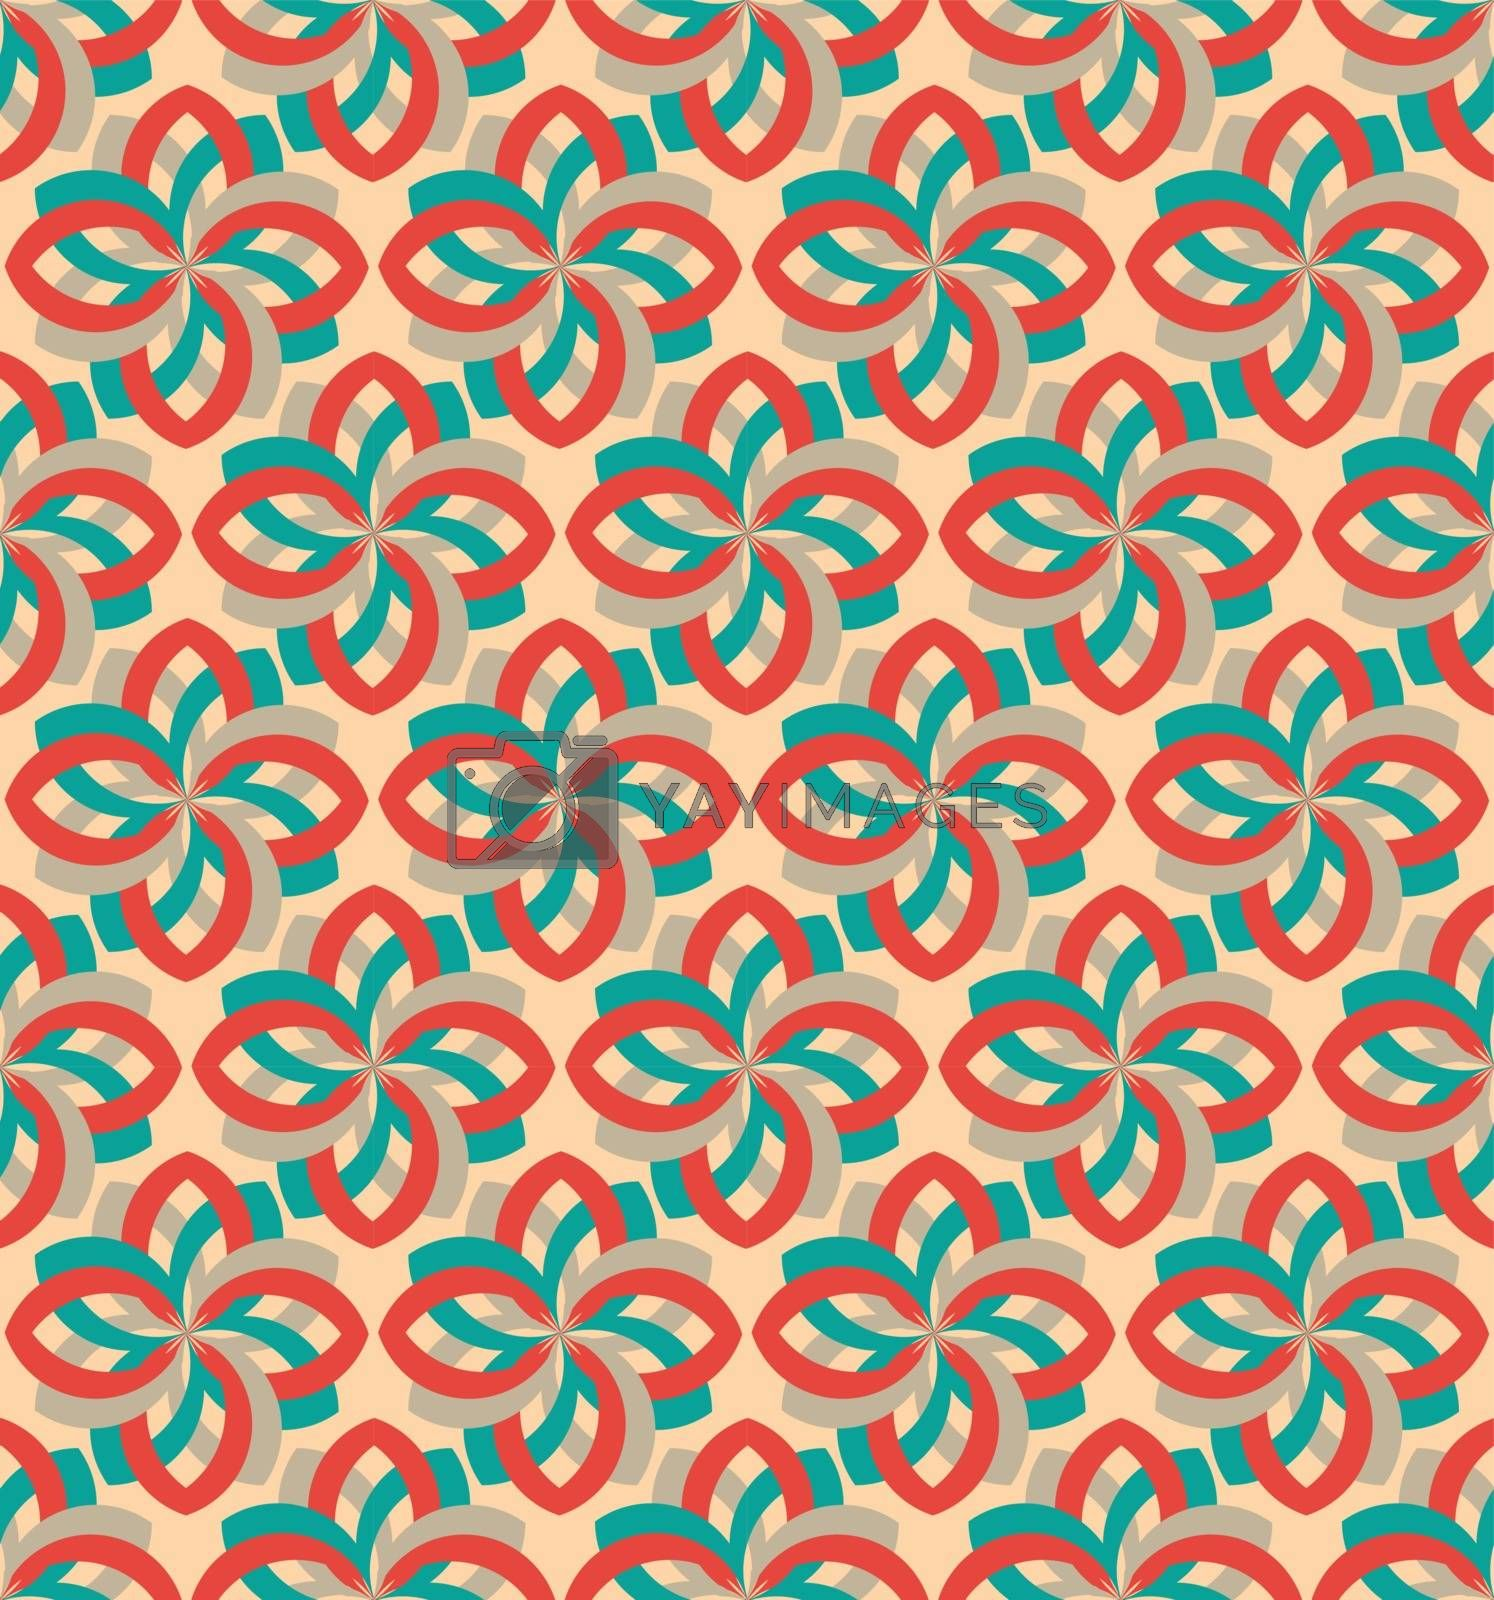 Retro flower geometric seamless pattern ornament by tommarkov